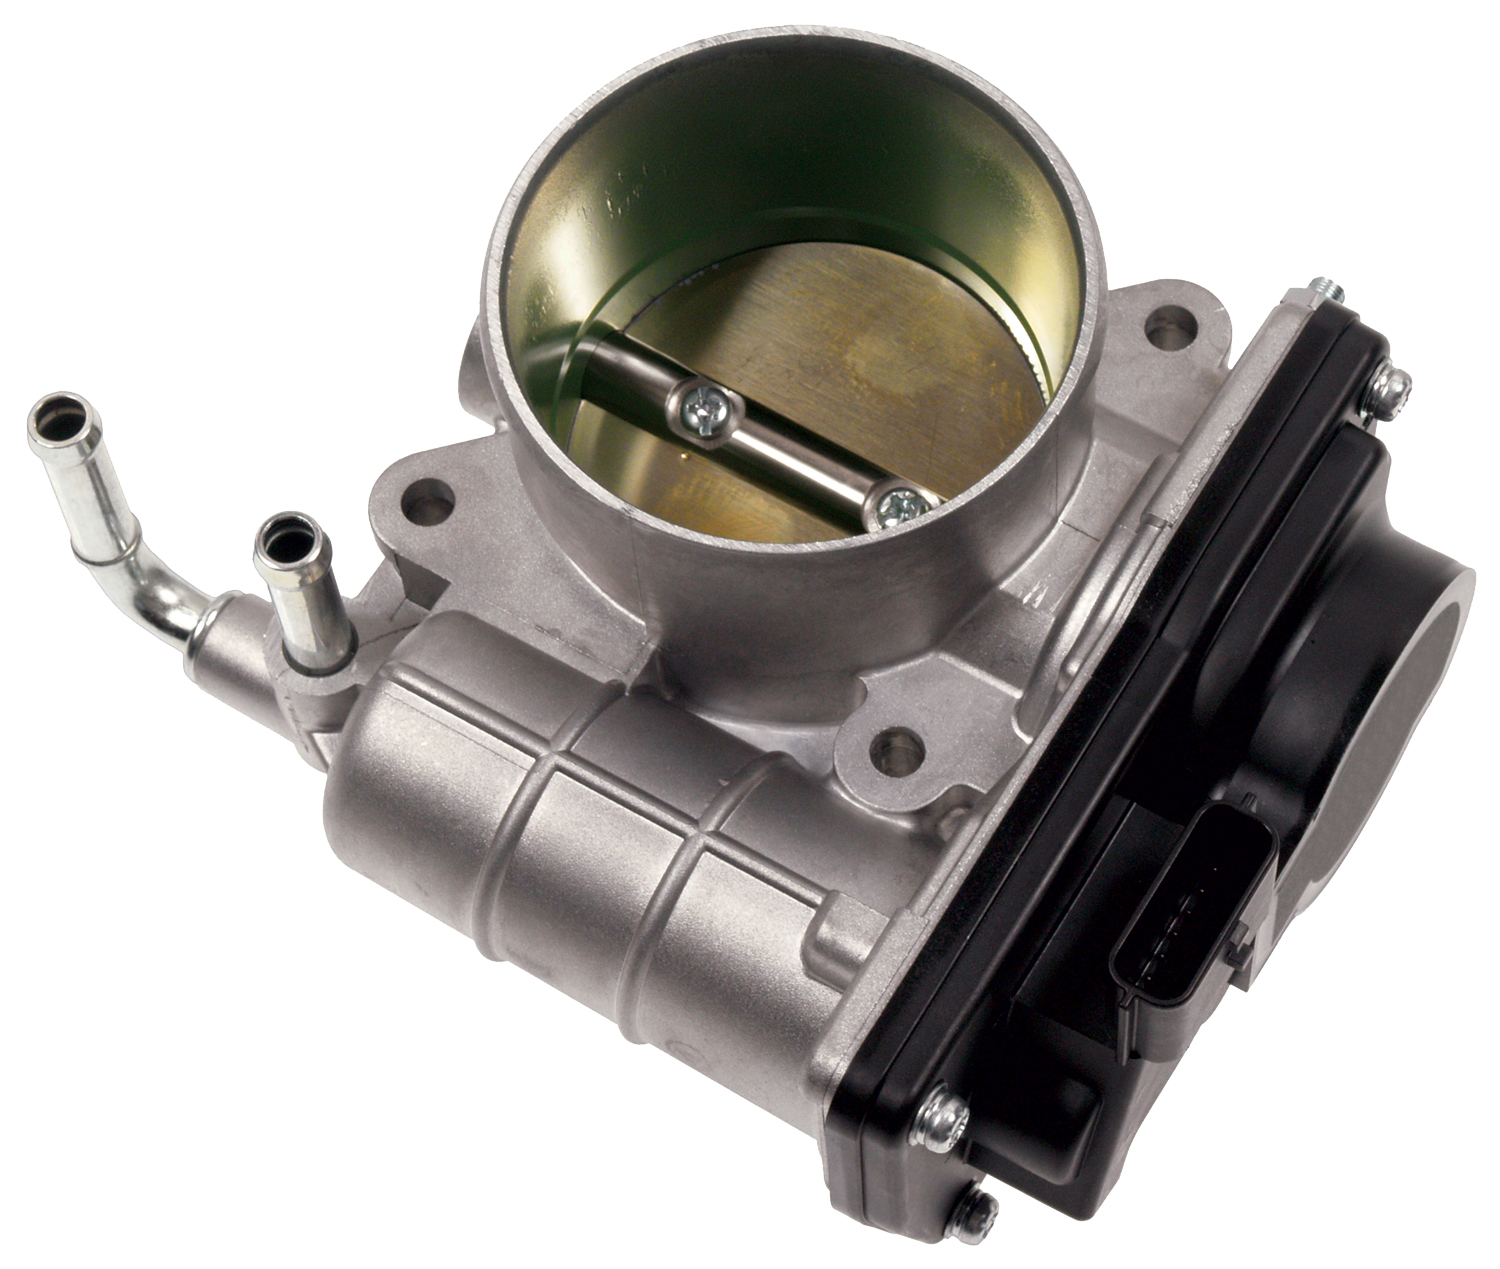 hight resolution of ford throttle body relearn procedure